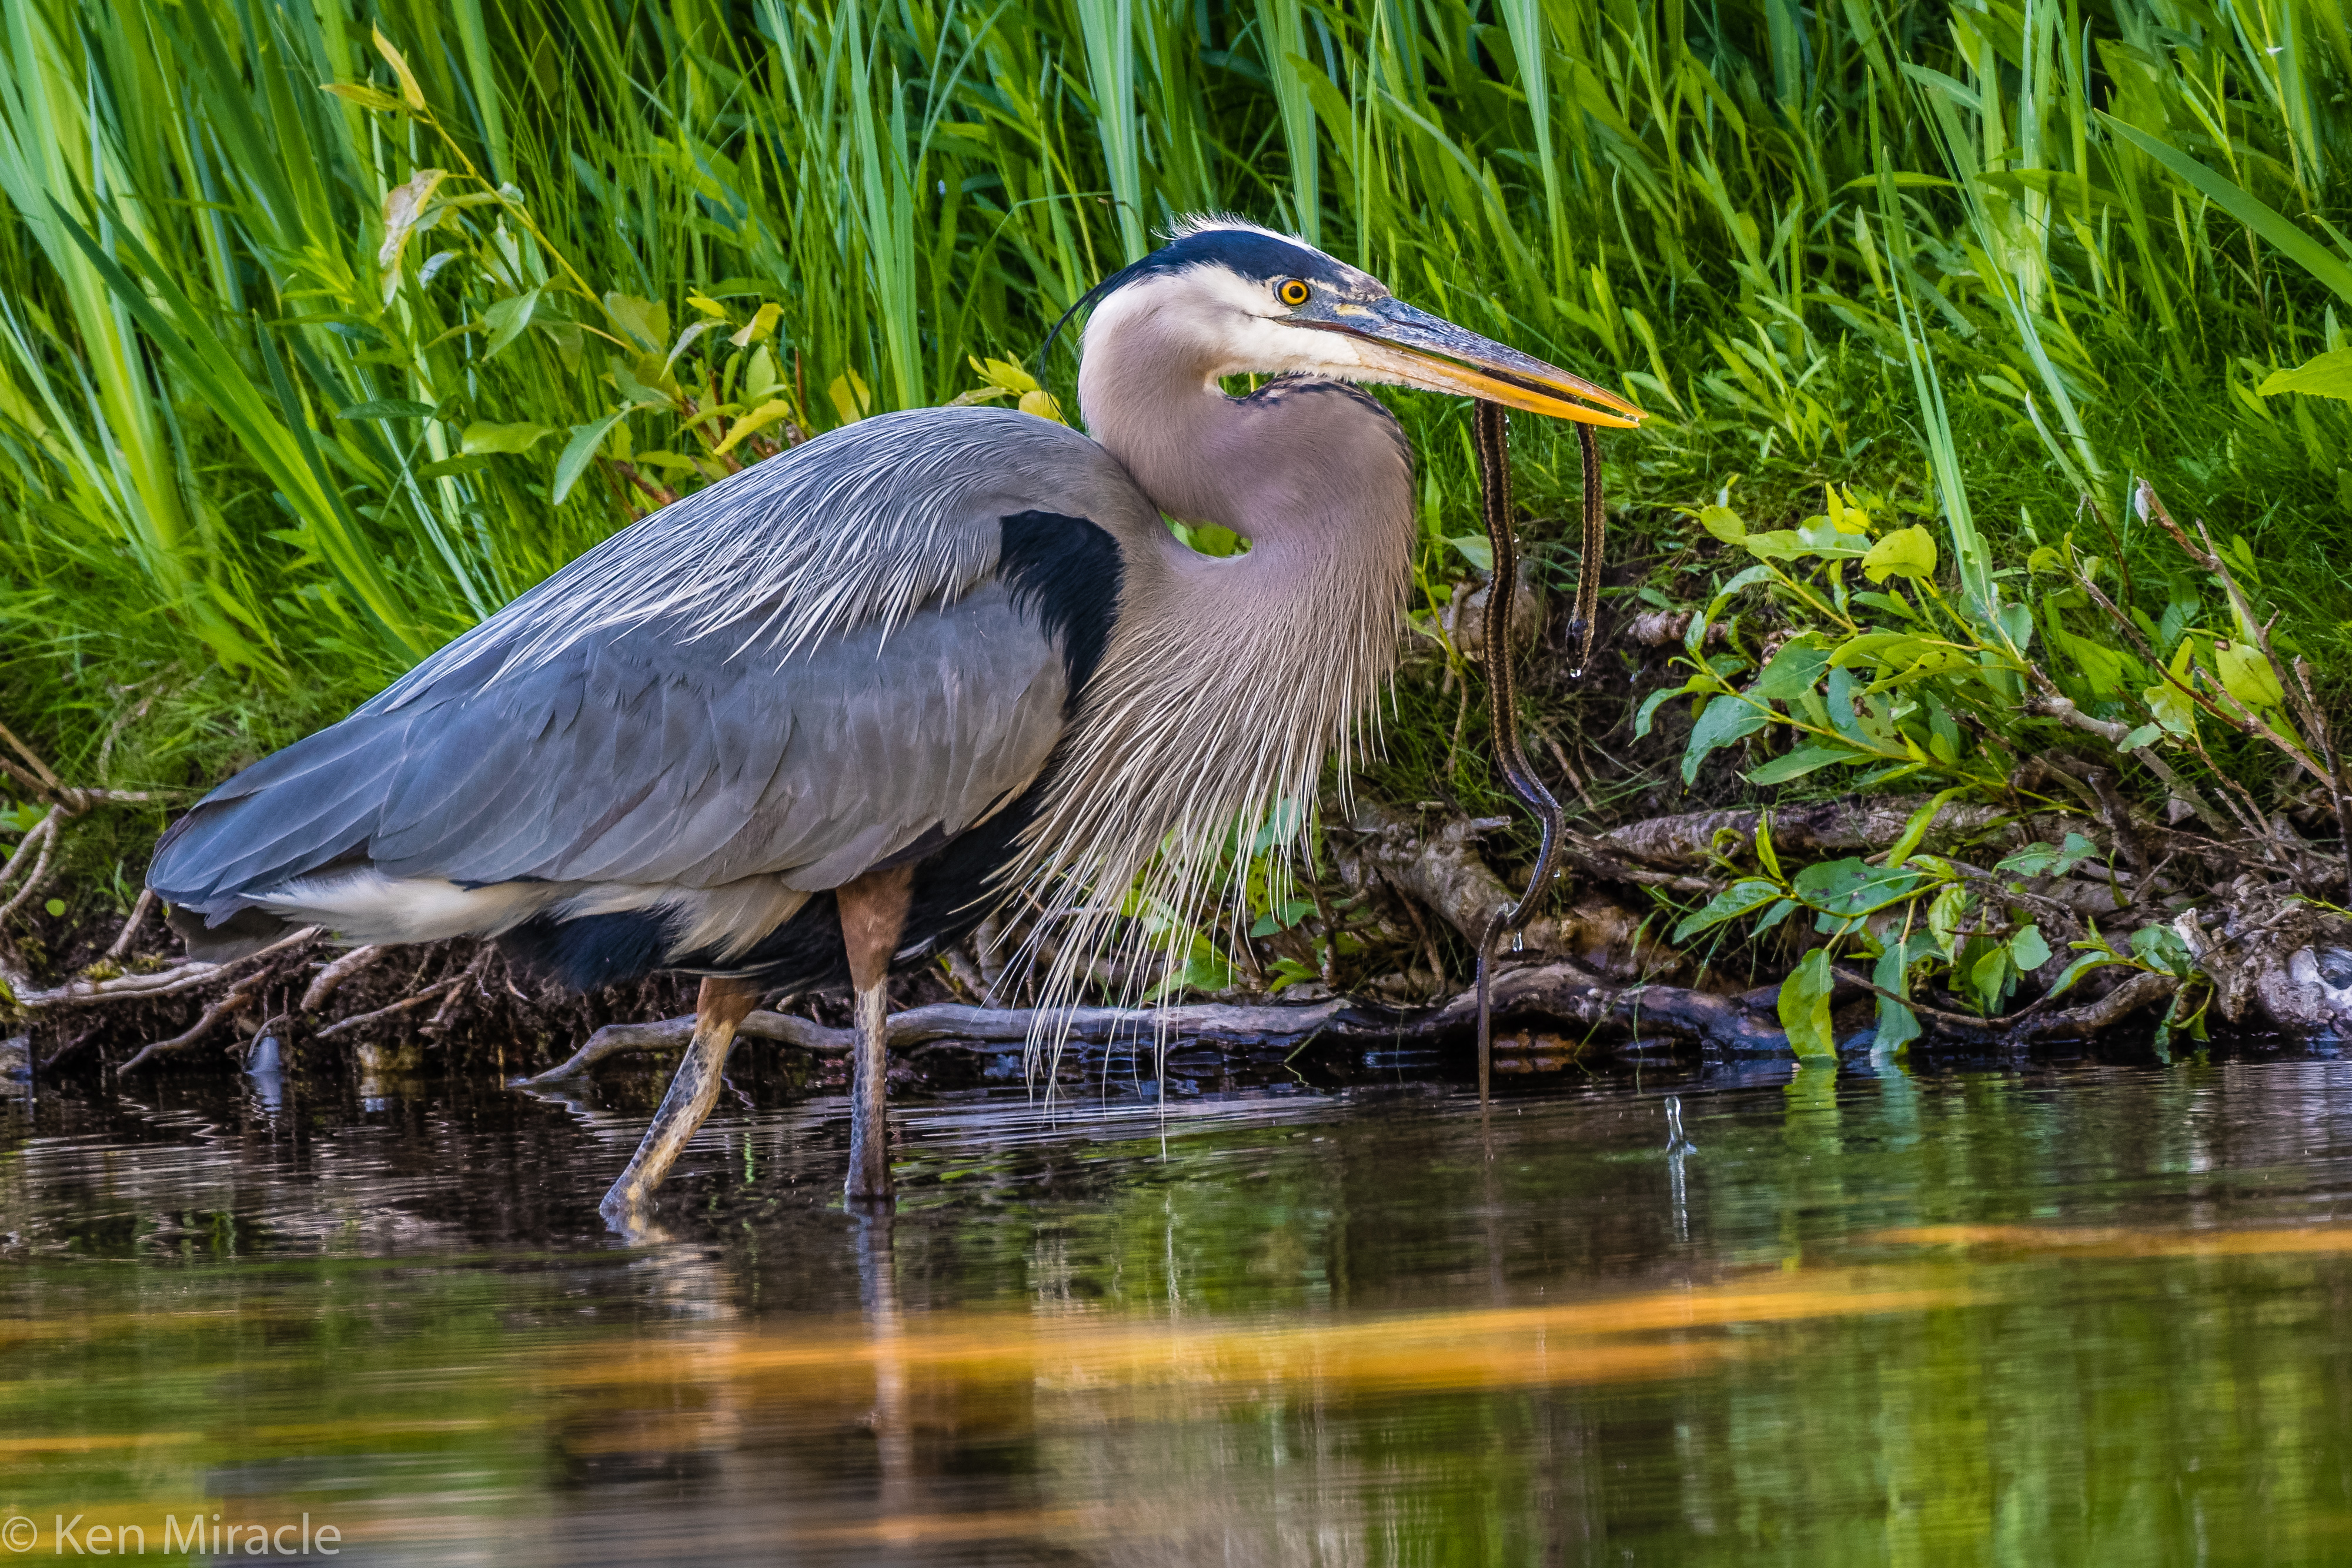 a heron wades in the water with reeds and grass in the background